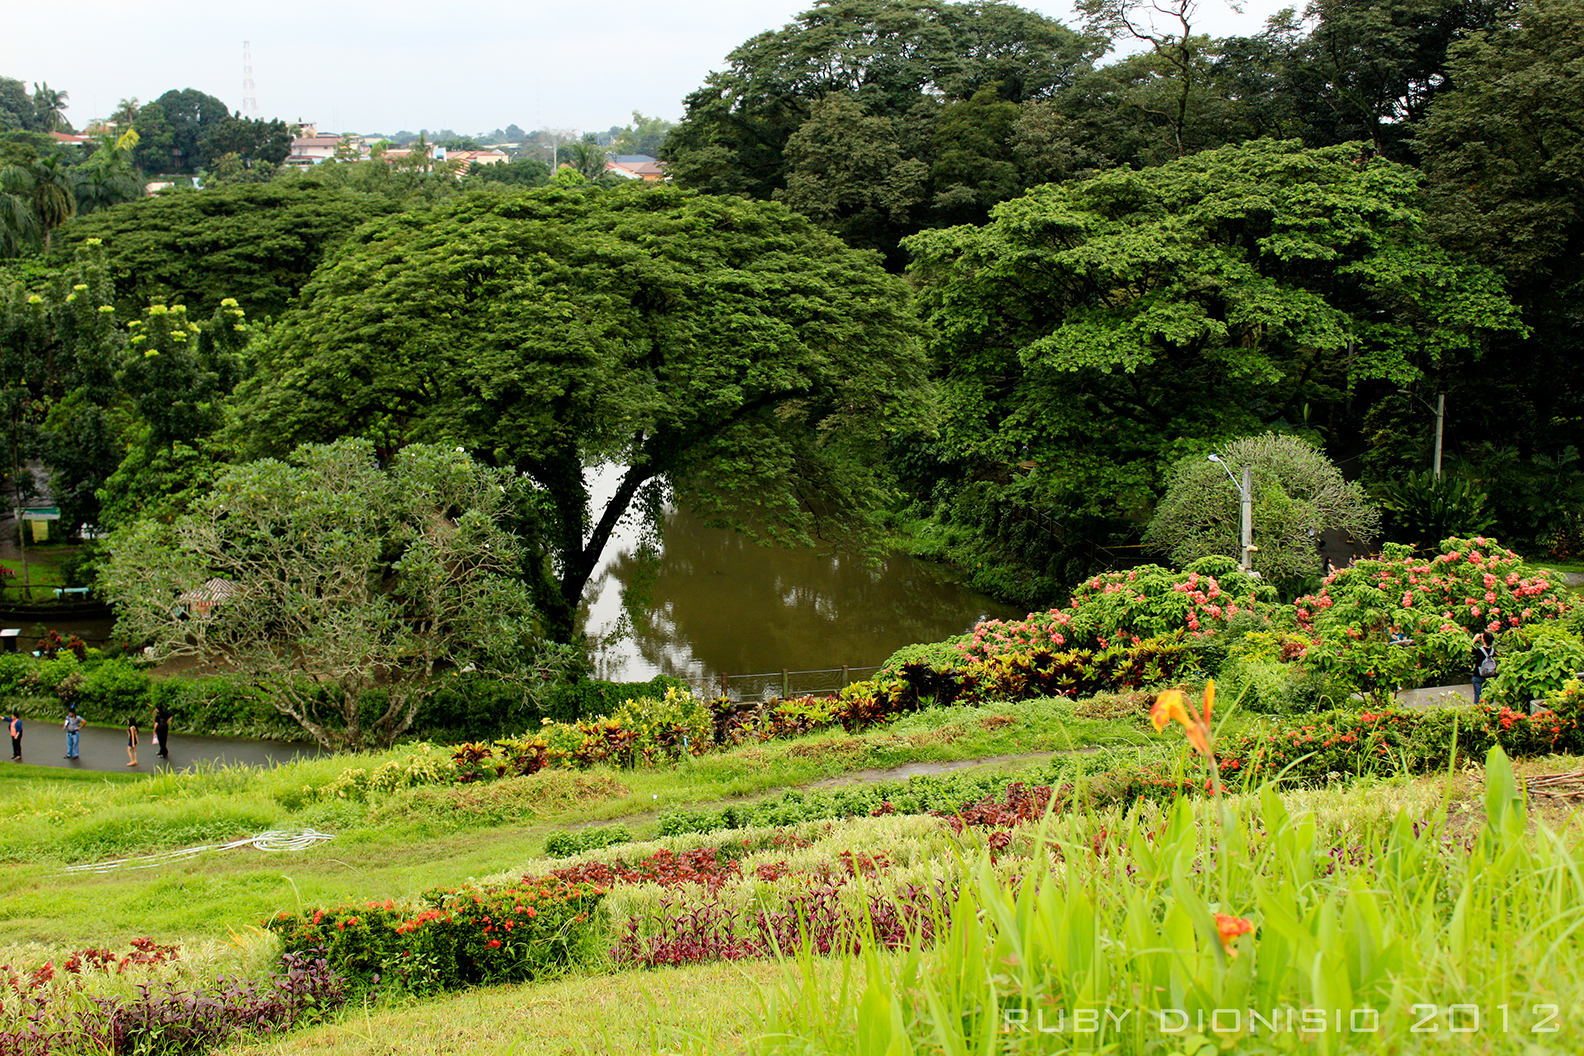 Philippines 21st century parks la mesa ecopark - La mesa eco park swimming pool photos ...